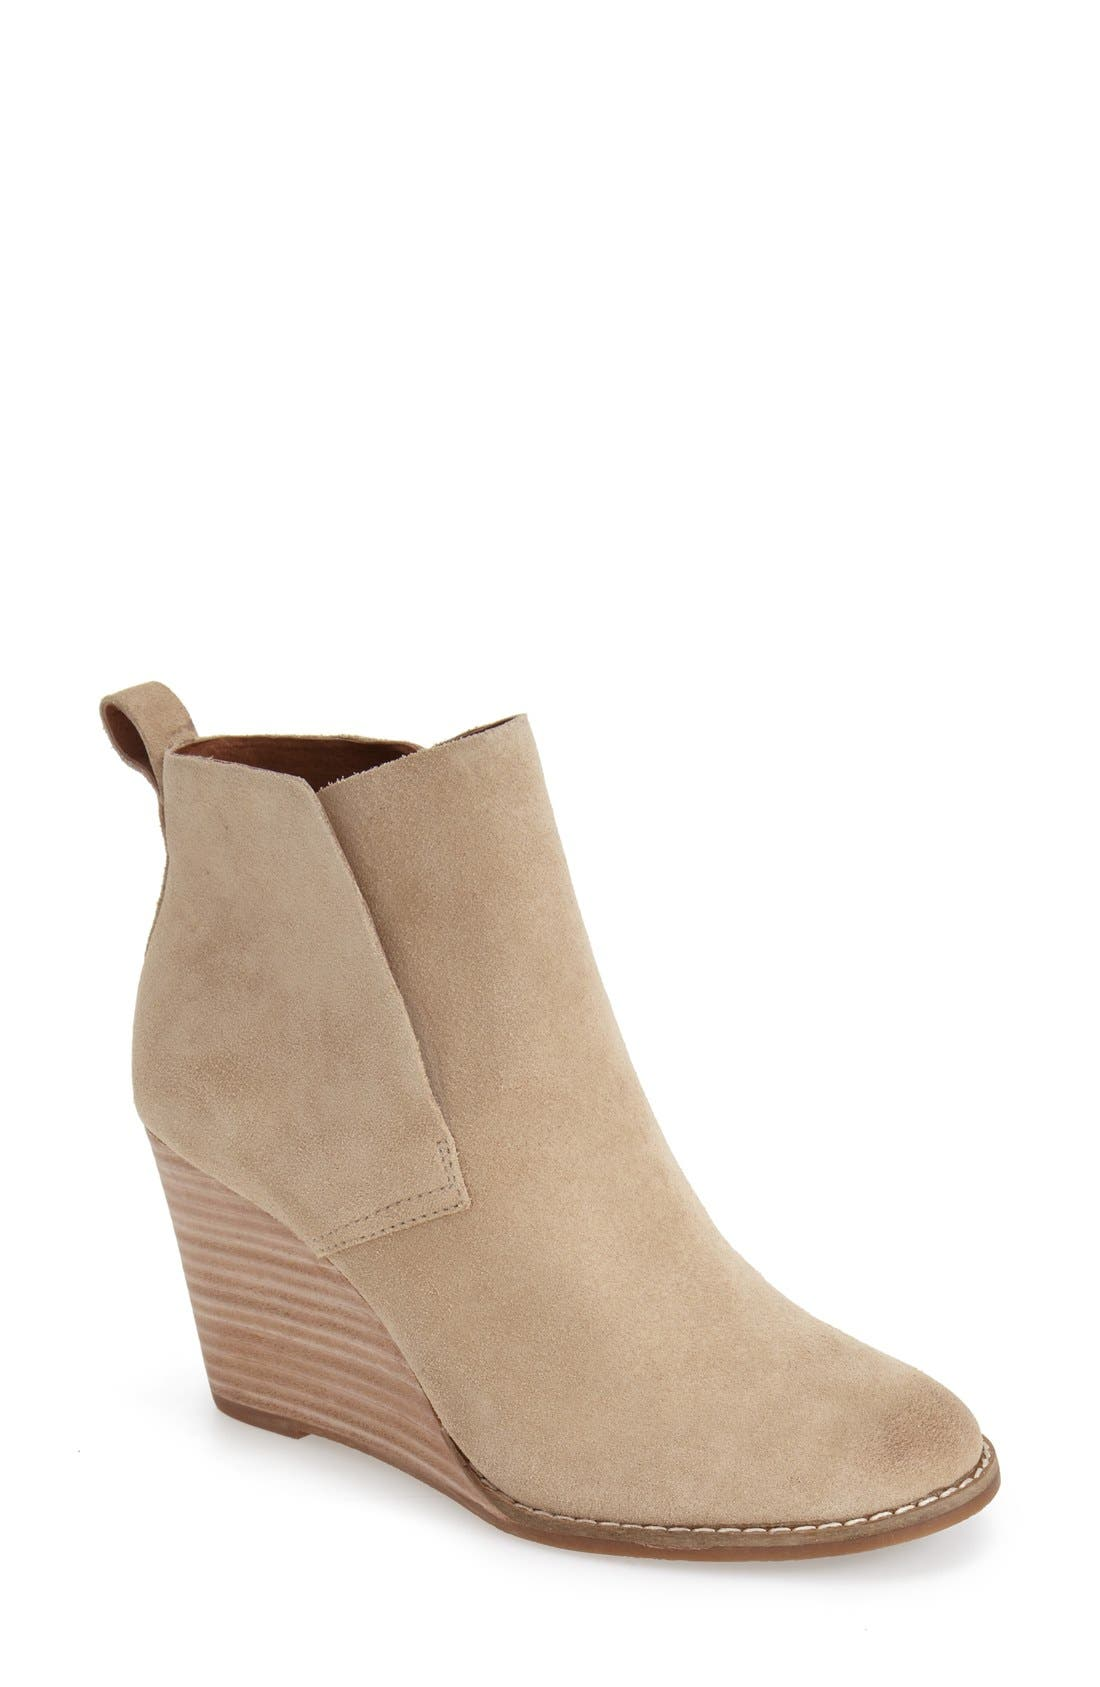 'Yoniana' Wedge Bootie,                             Main thumbnail 5, color,